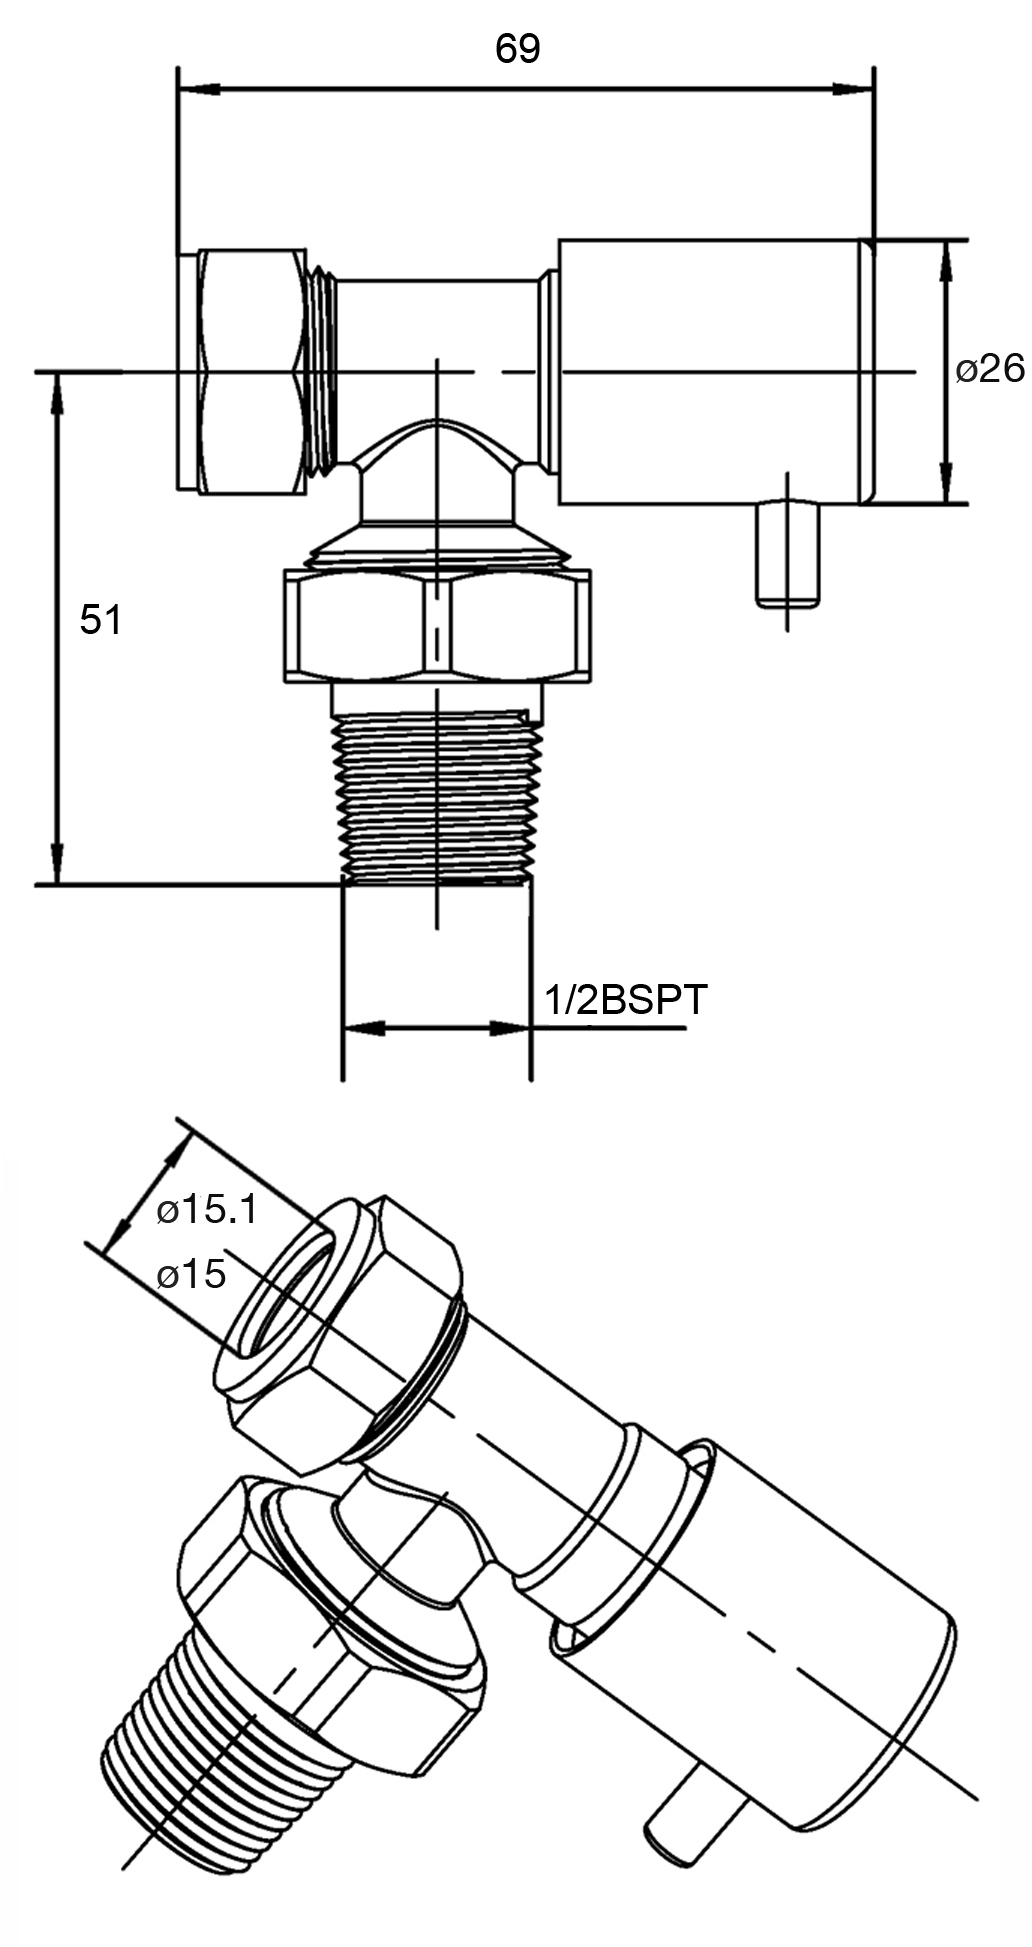 Radiator Valve Diagram together with Panduit Wire Duct Catalog in addition Kitchen Wiring Plan as well How To Wire Led Lights To A Switch additionally Radionichitechincrx51519in80ledlinkableundercabi lightfixture. on cabinet direct wire led lights